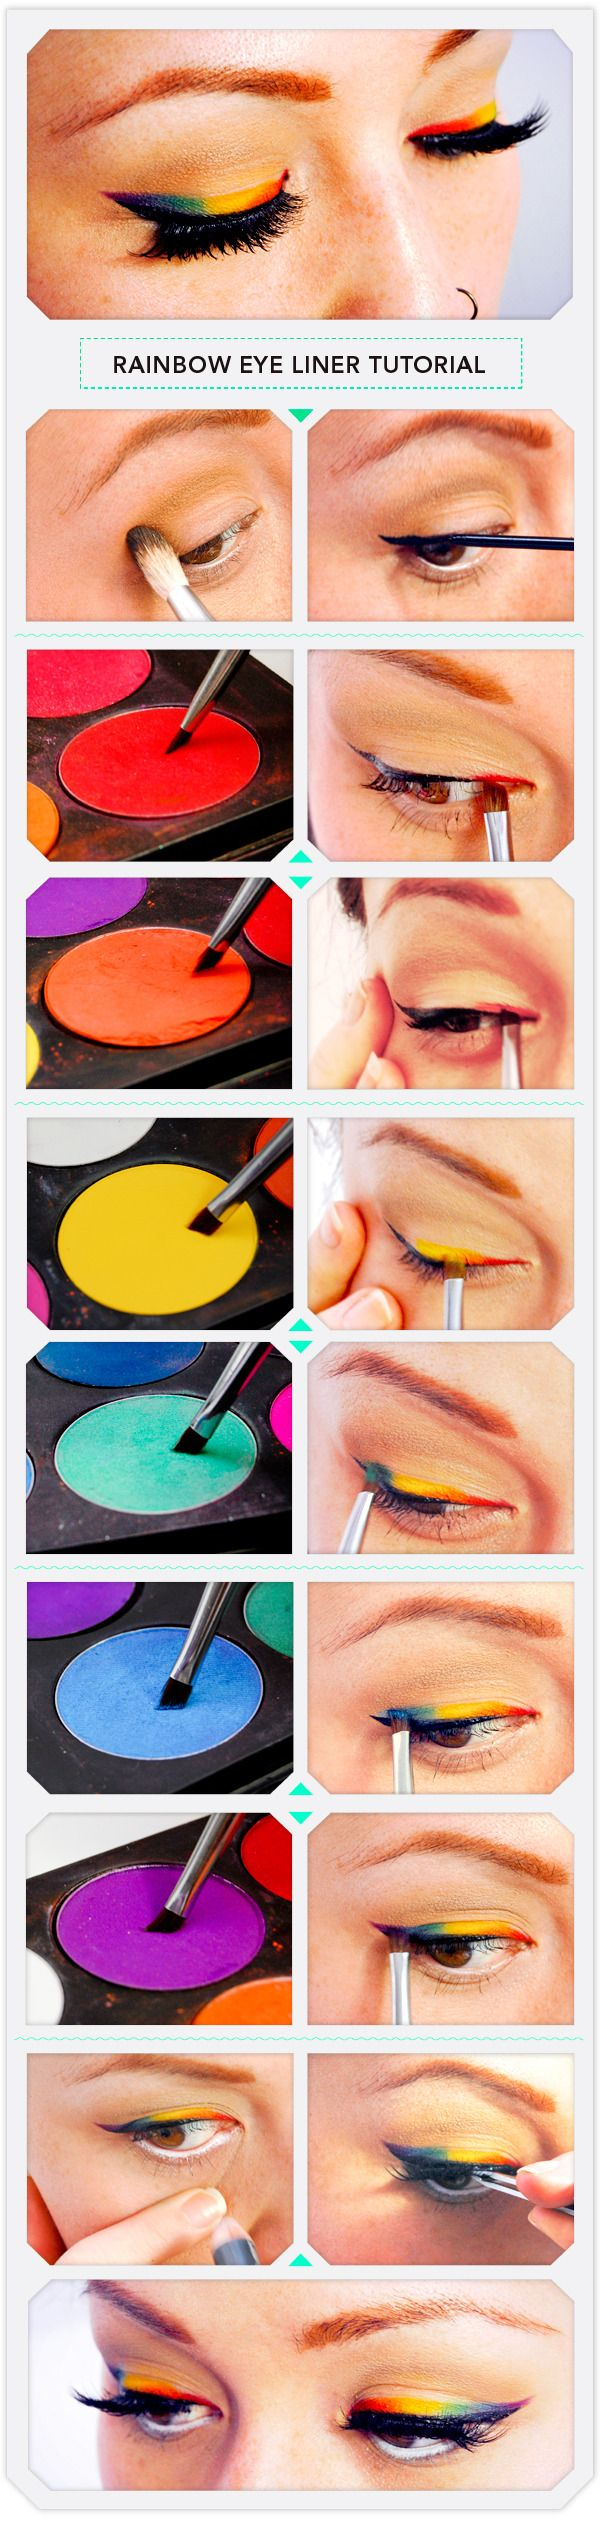 Rainbow Eye Liner Tutorial | Beautylish- http://www.beautylish.com/a/vcywi/rainbow-eye-liner-tutorial#